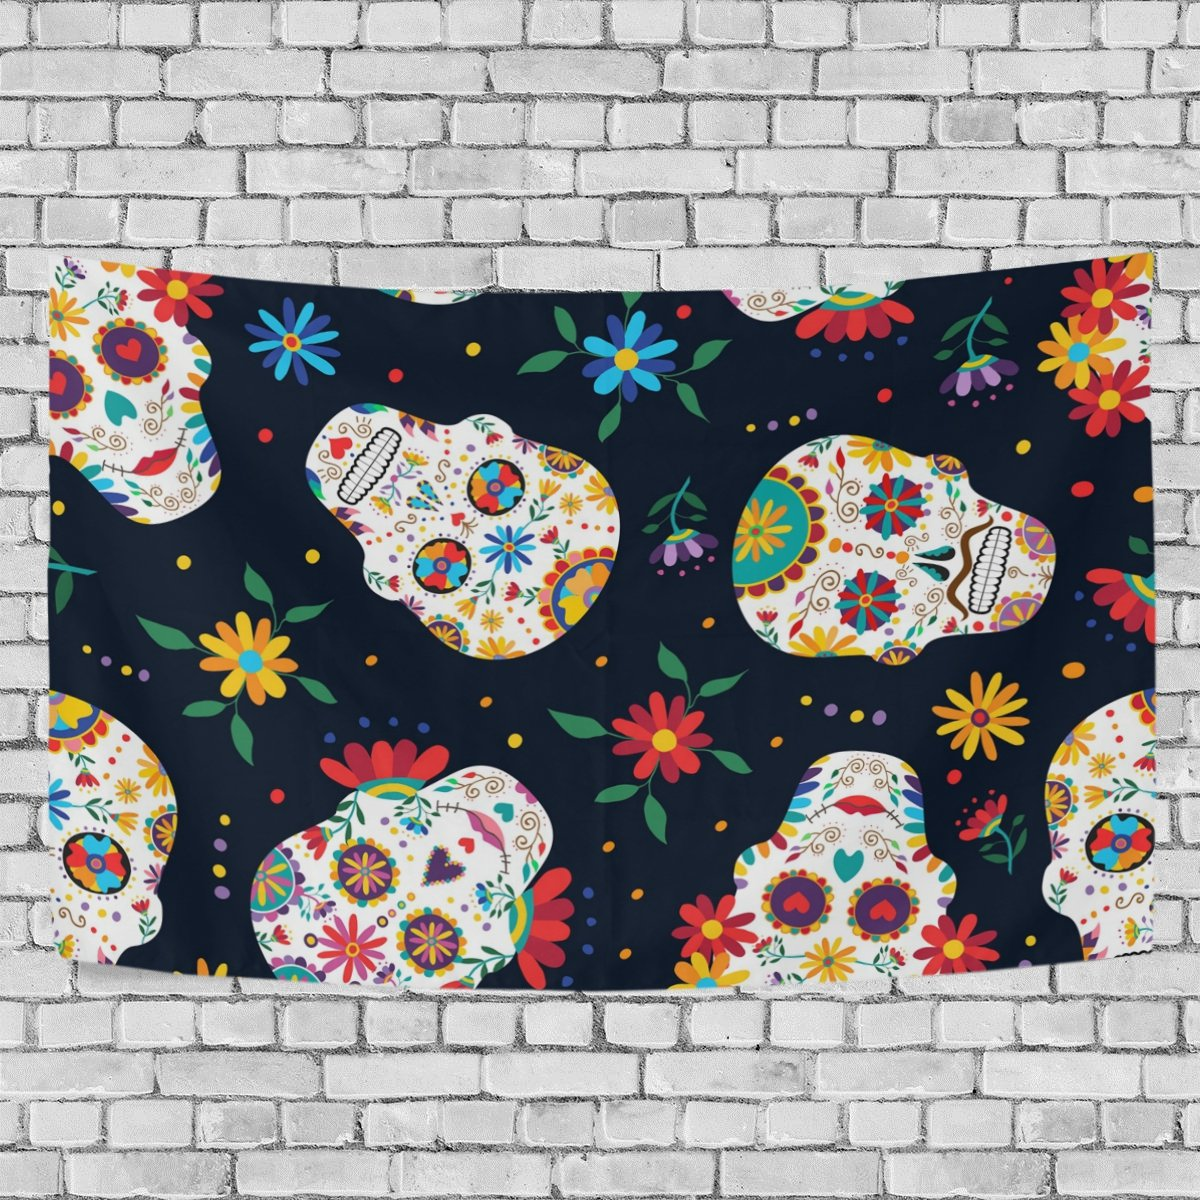 AURELIOR Sugar Skull Home Decor, Day Of The Dead Floral Skull Pattern Tapestry Wall Decor Art for Living Room Bedroom Decoration 80 X 60 Inches